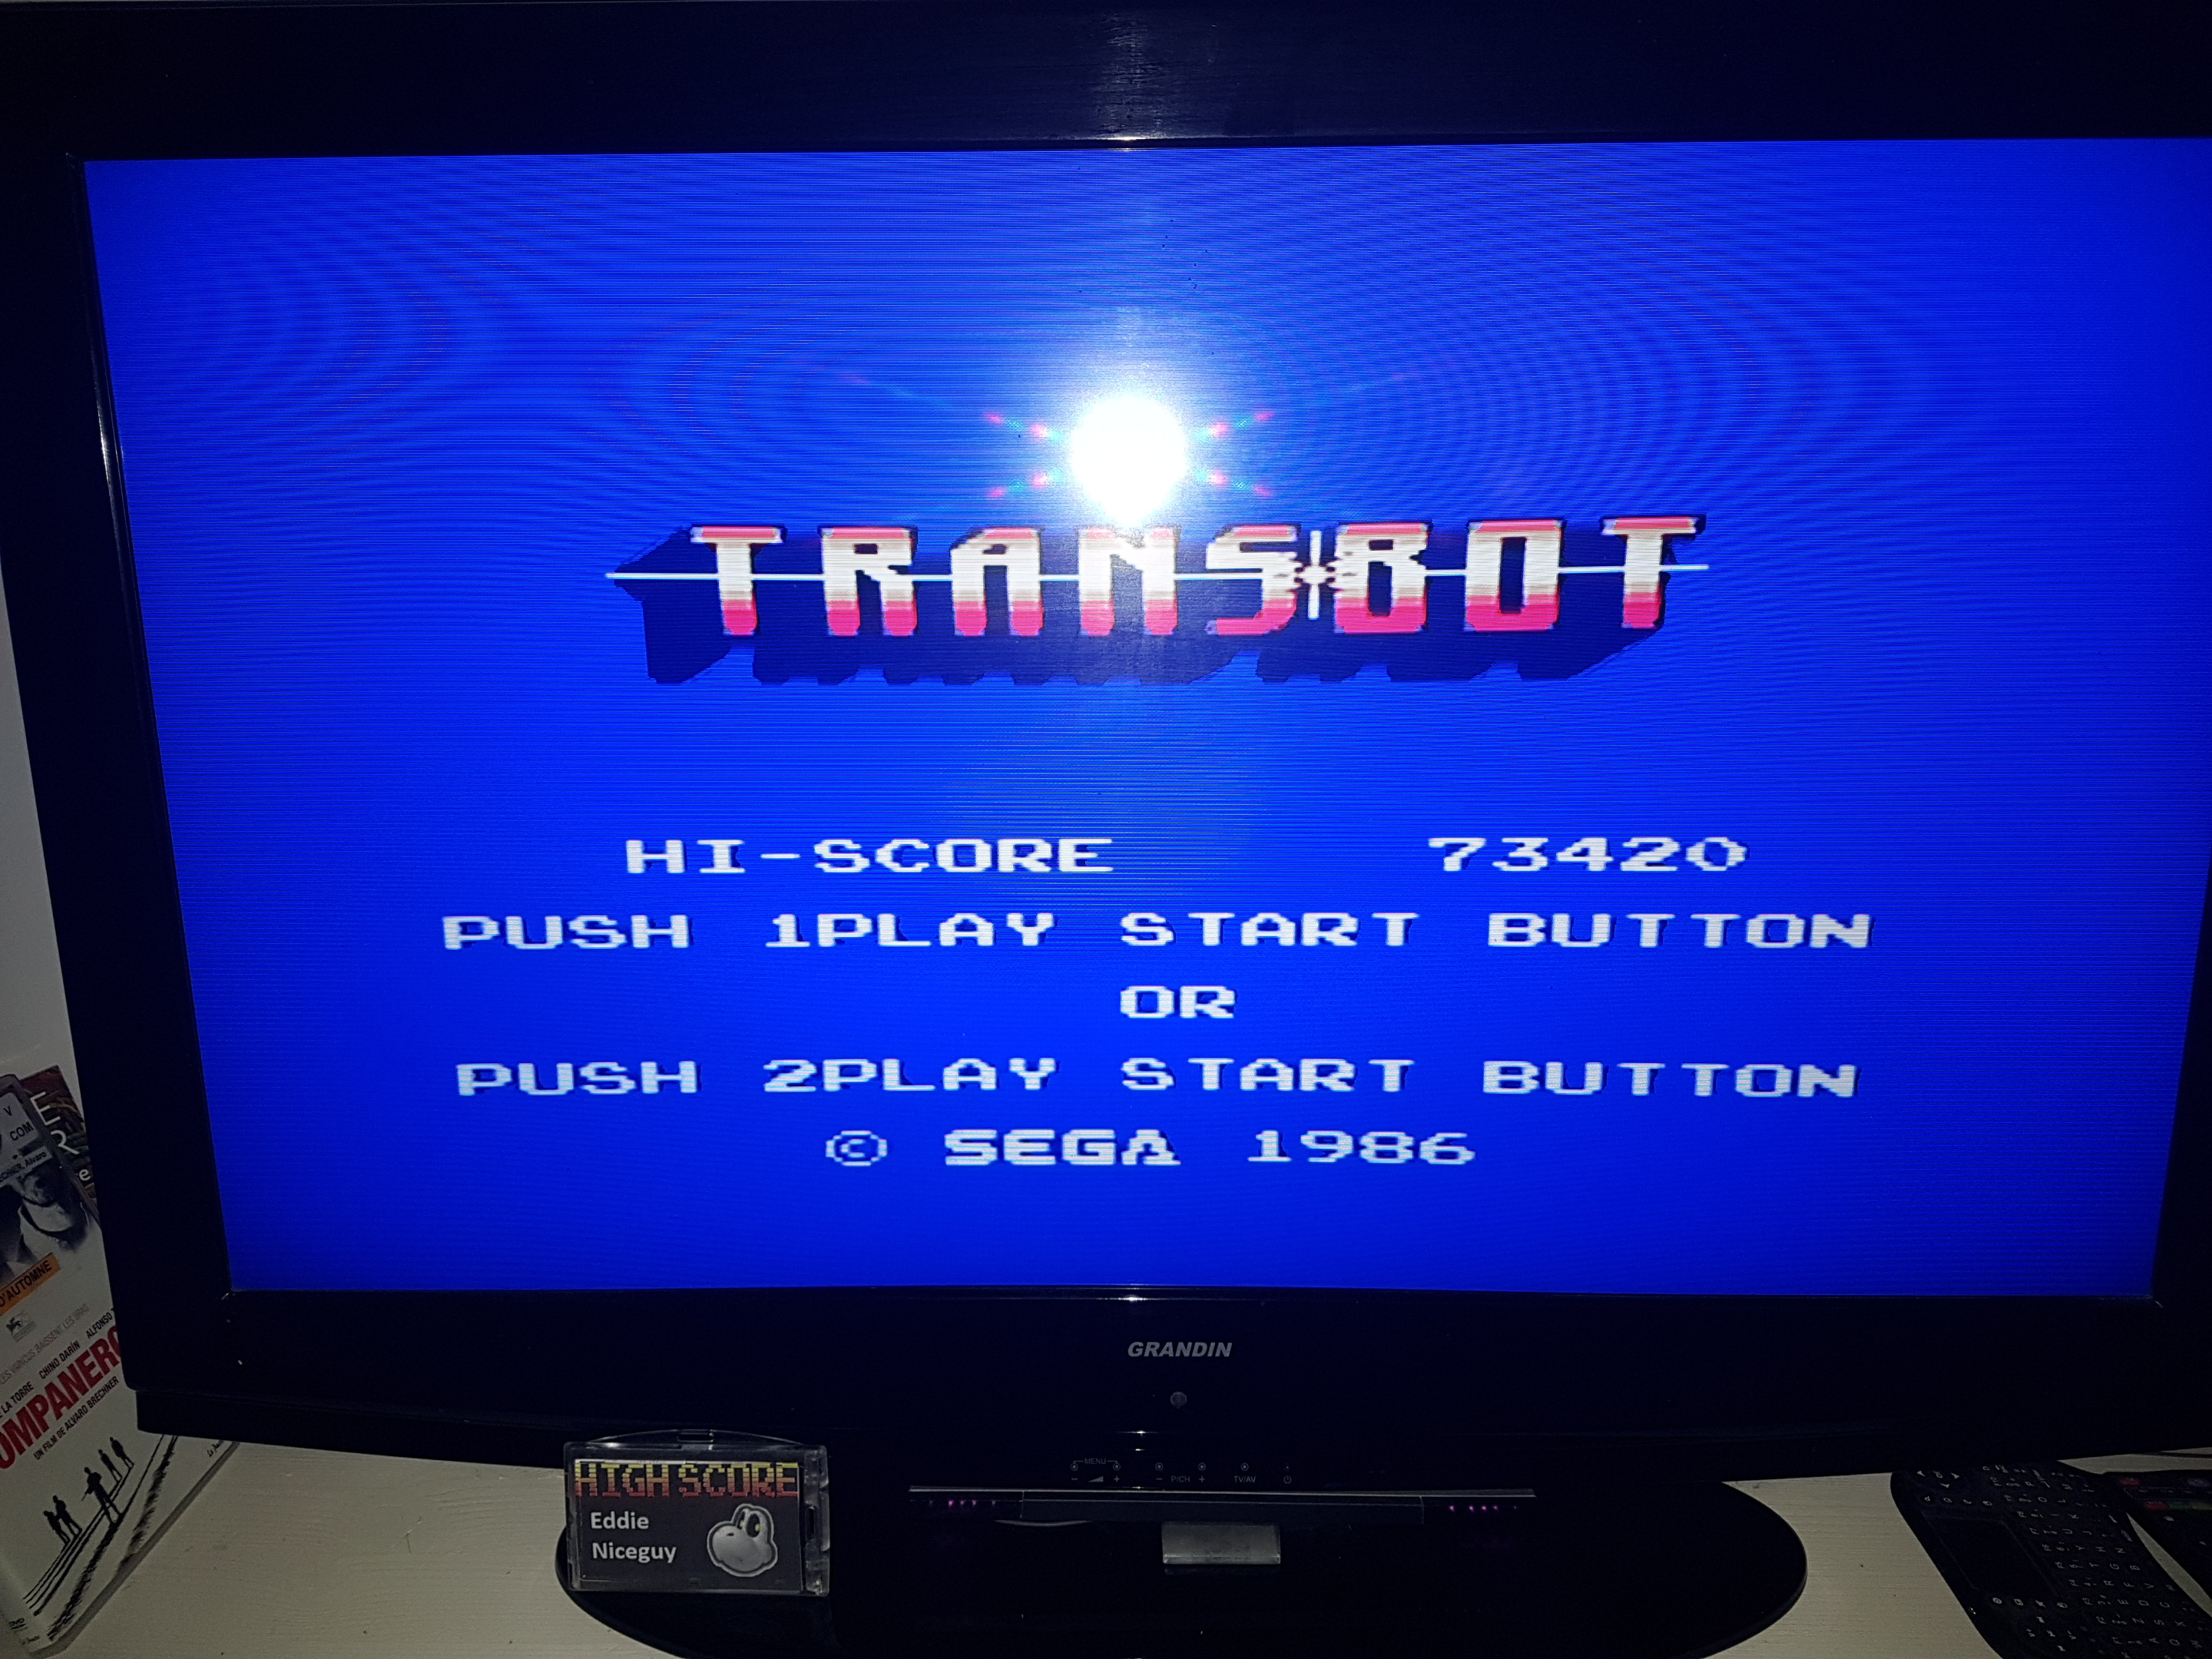 EddieNiceguy: Transbot (Sega Master System Emulated) 73,420 points on 2019-10-04 15:46:10